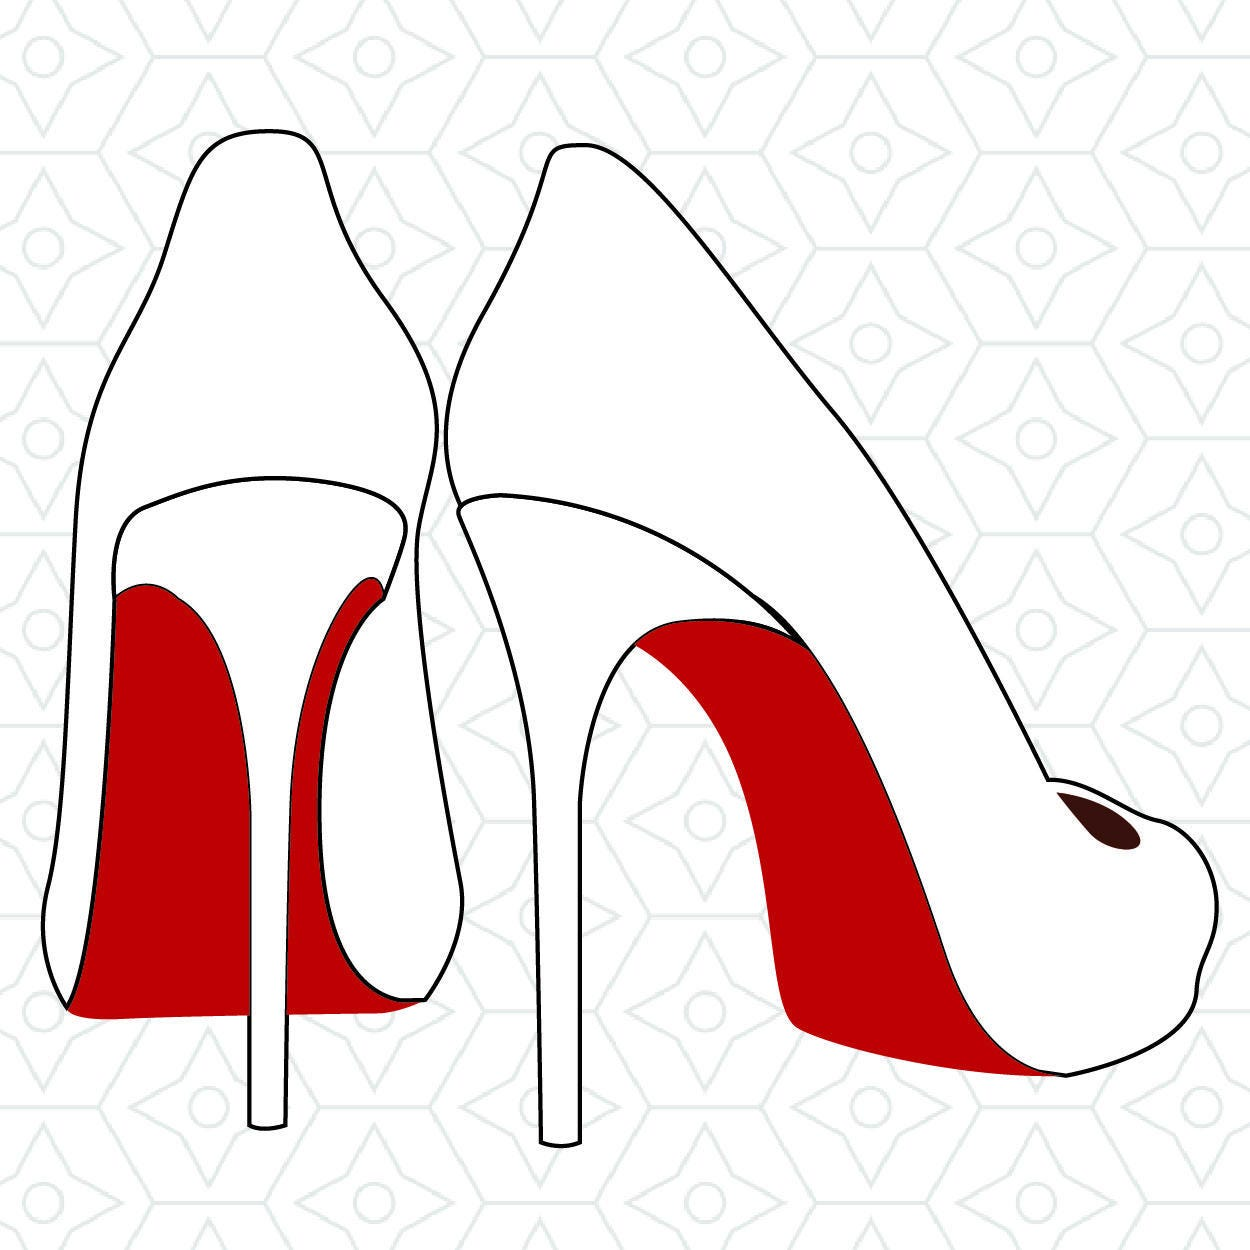 High Heels Decal Design Svg Dxf Eps Vector Files For Use